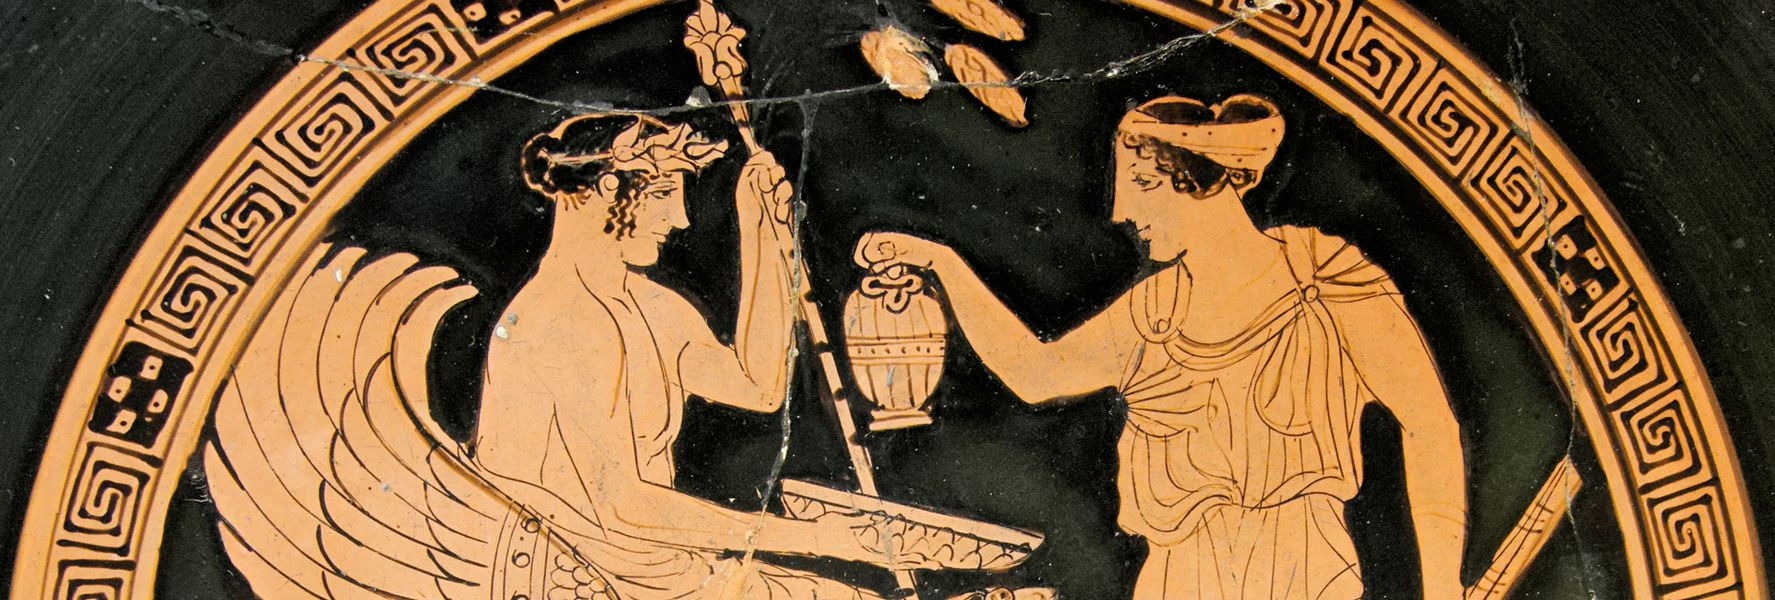 Greek Myths in Science: Scylla and Charybdis - OpenMind